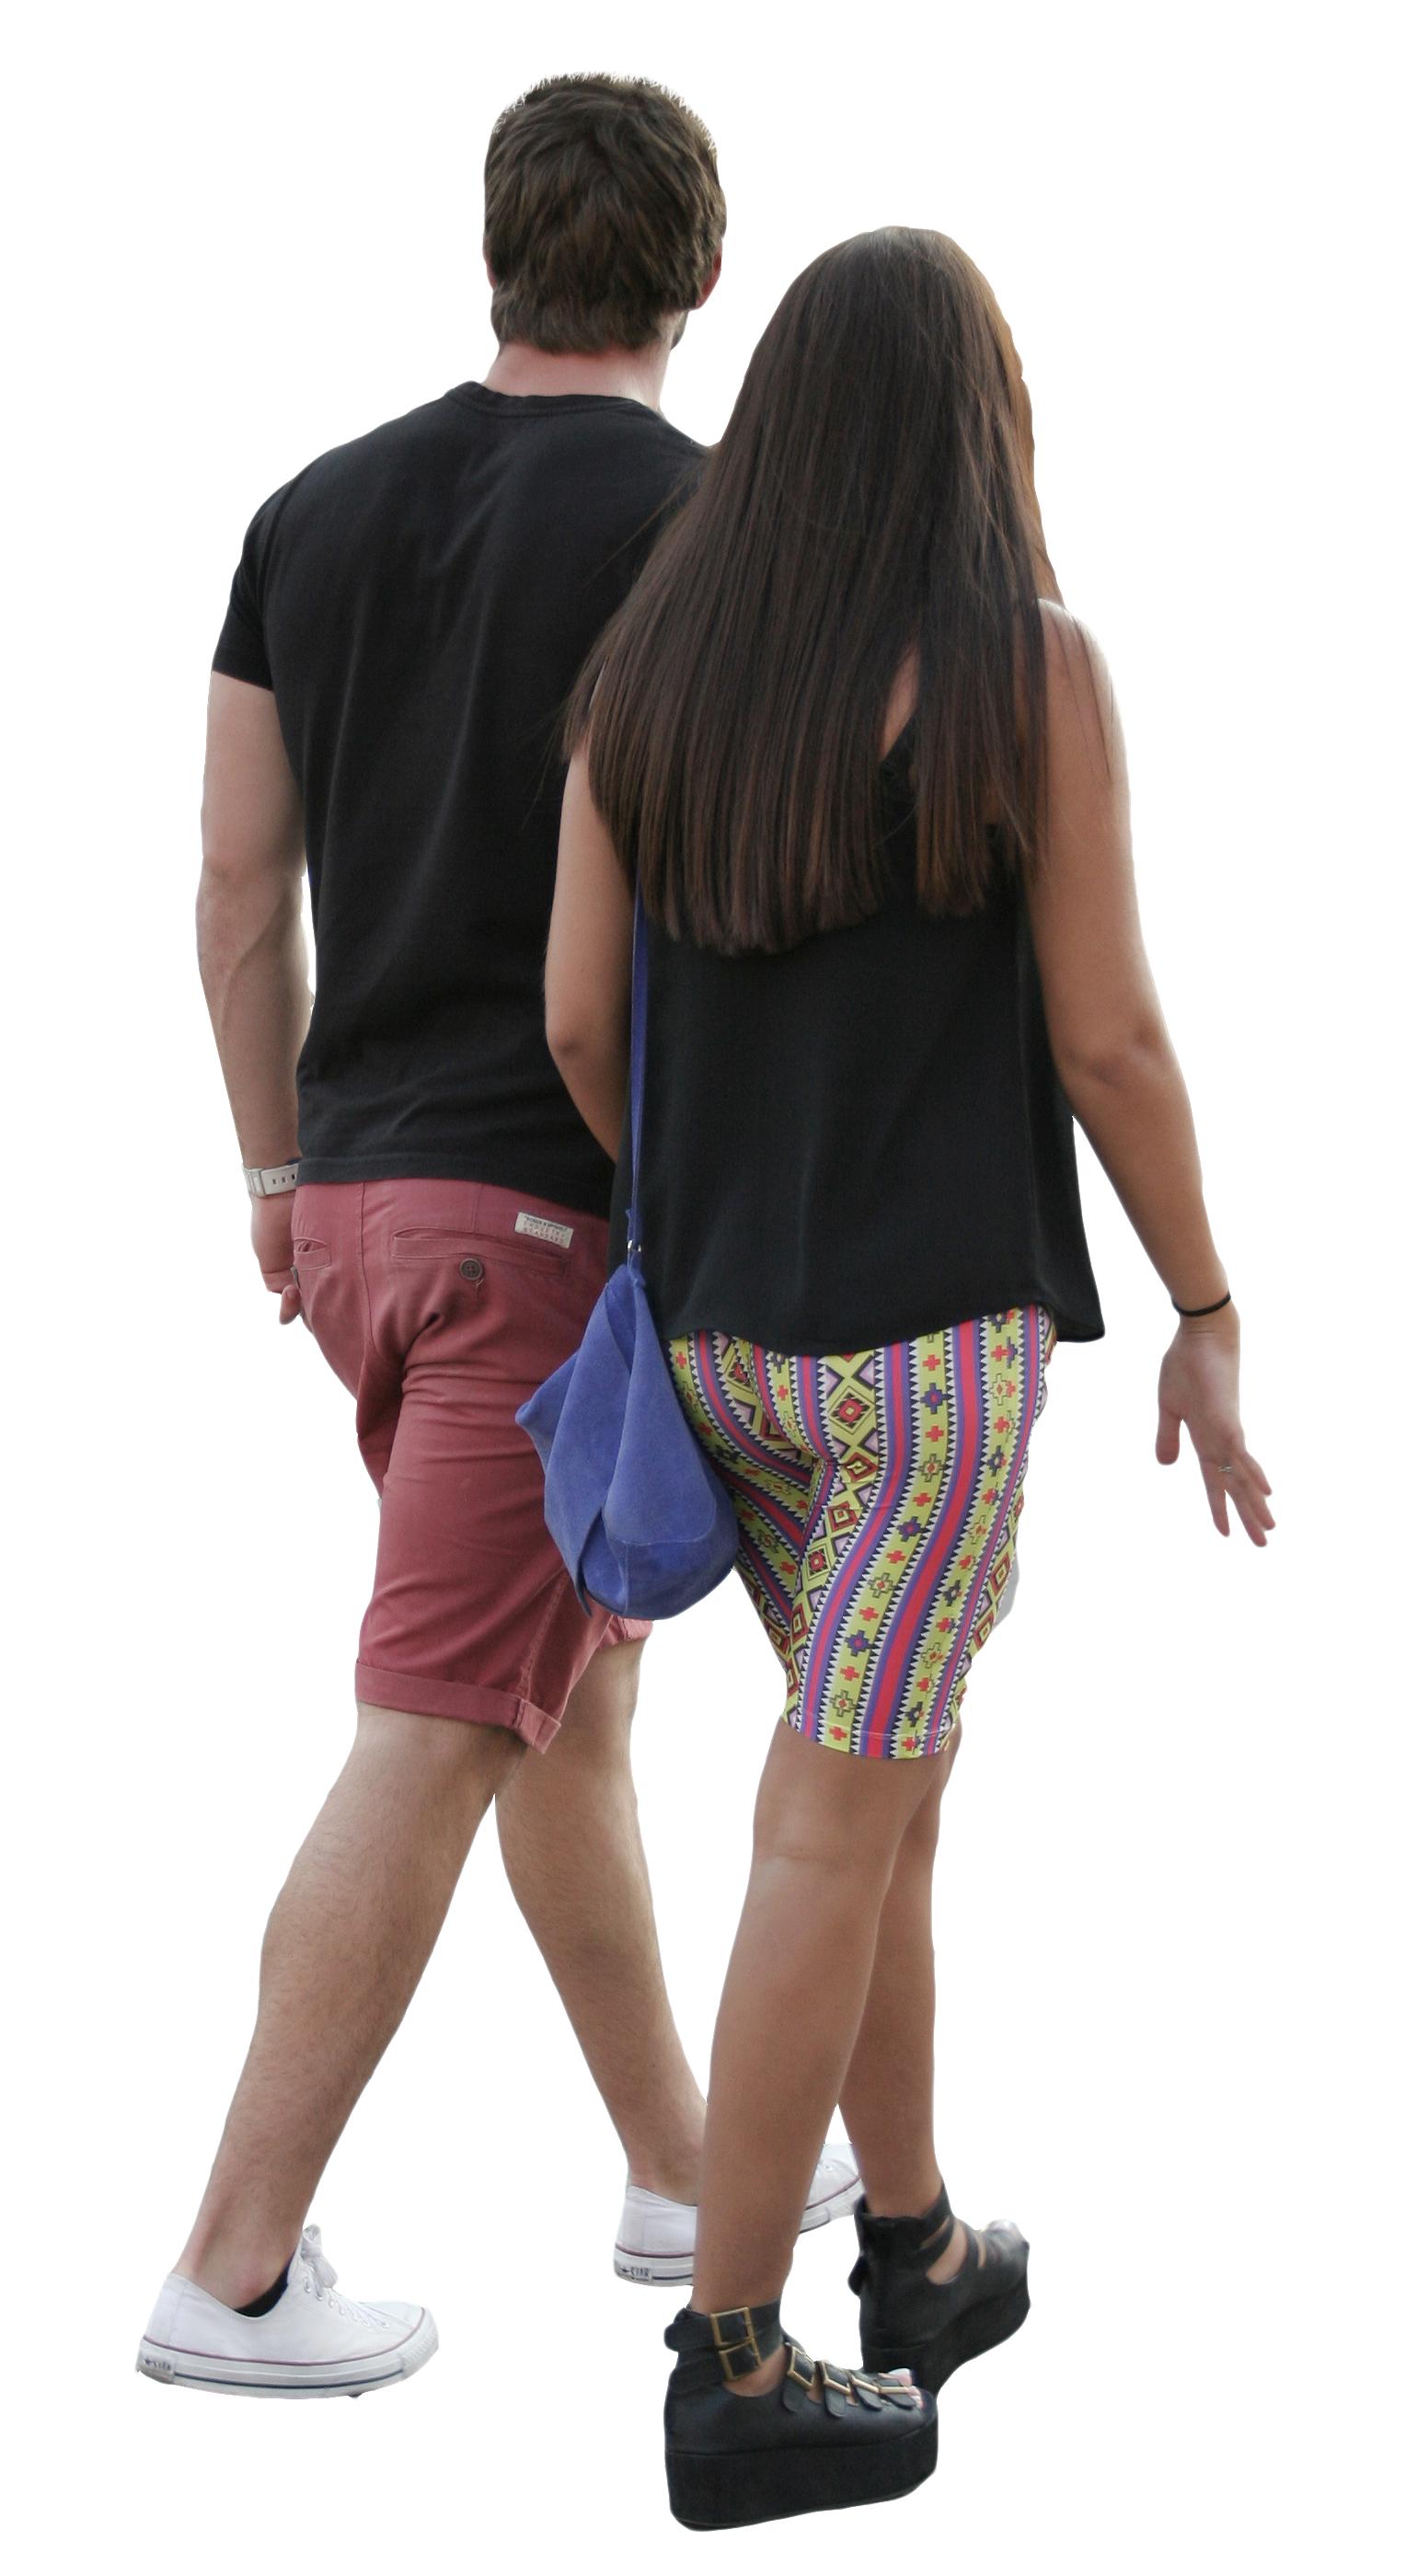 Pin On Couple Png